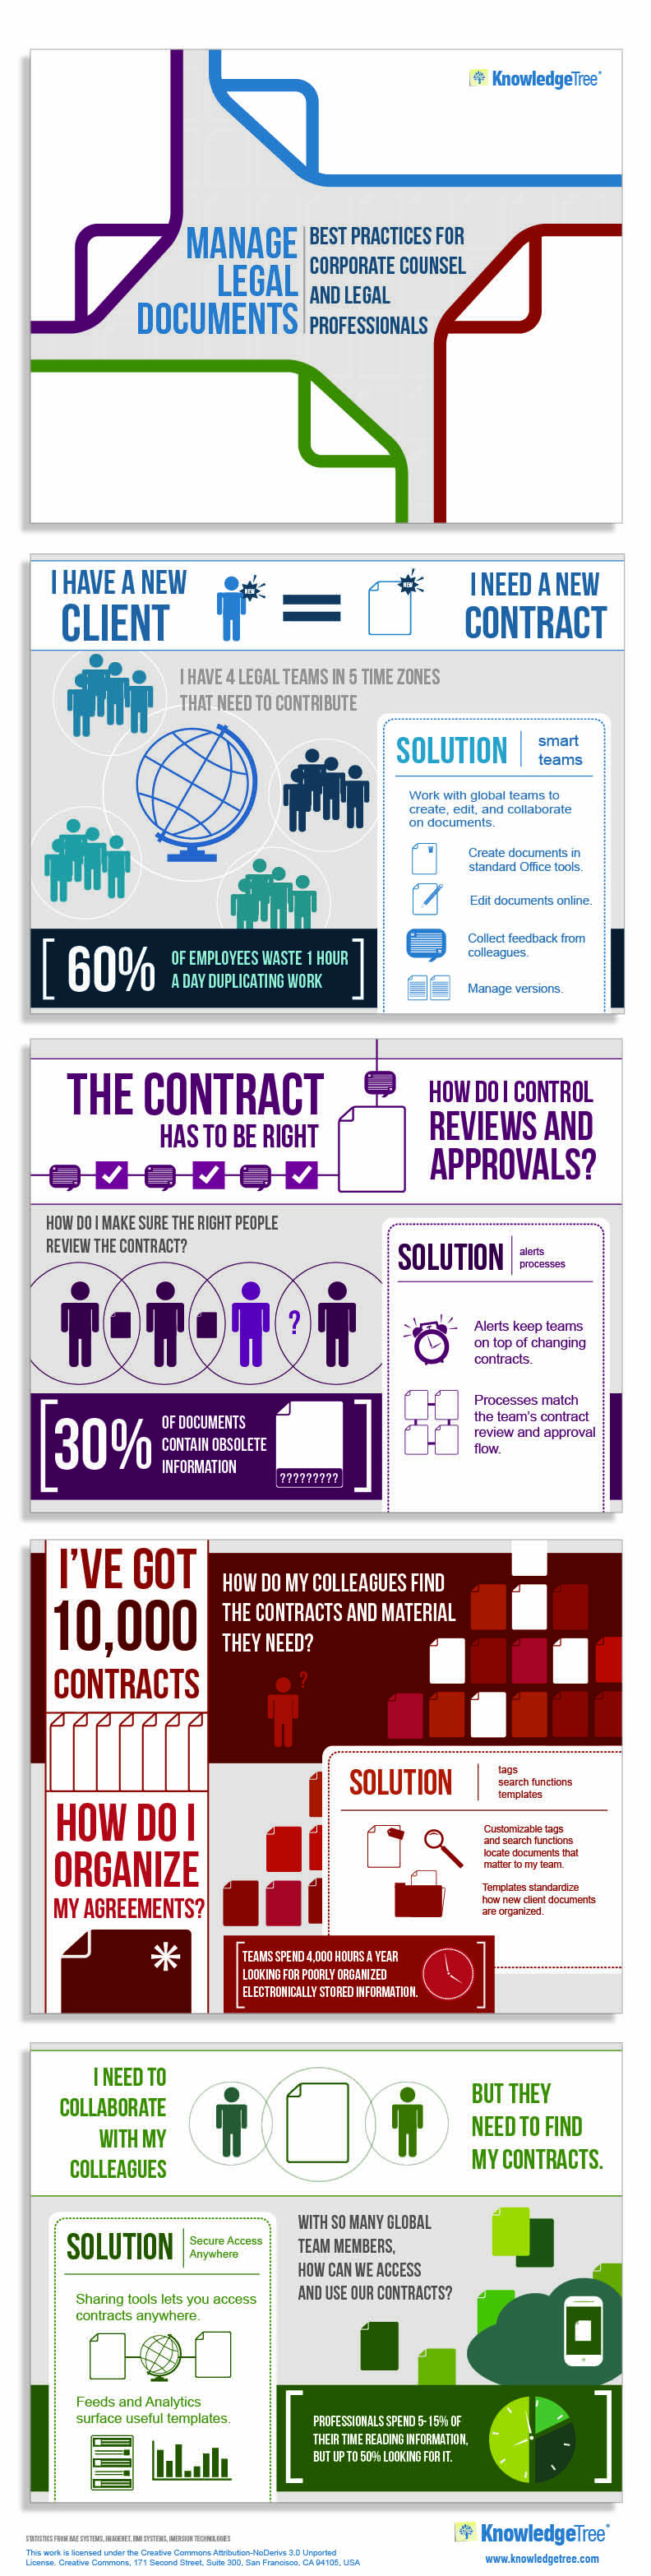 Managing Legal Documents Management Infographic Corporate Counsel Online Infographic